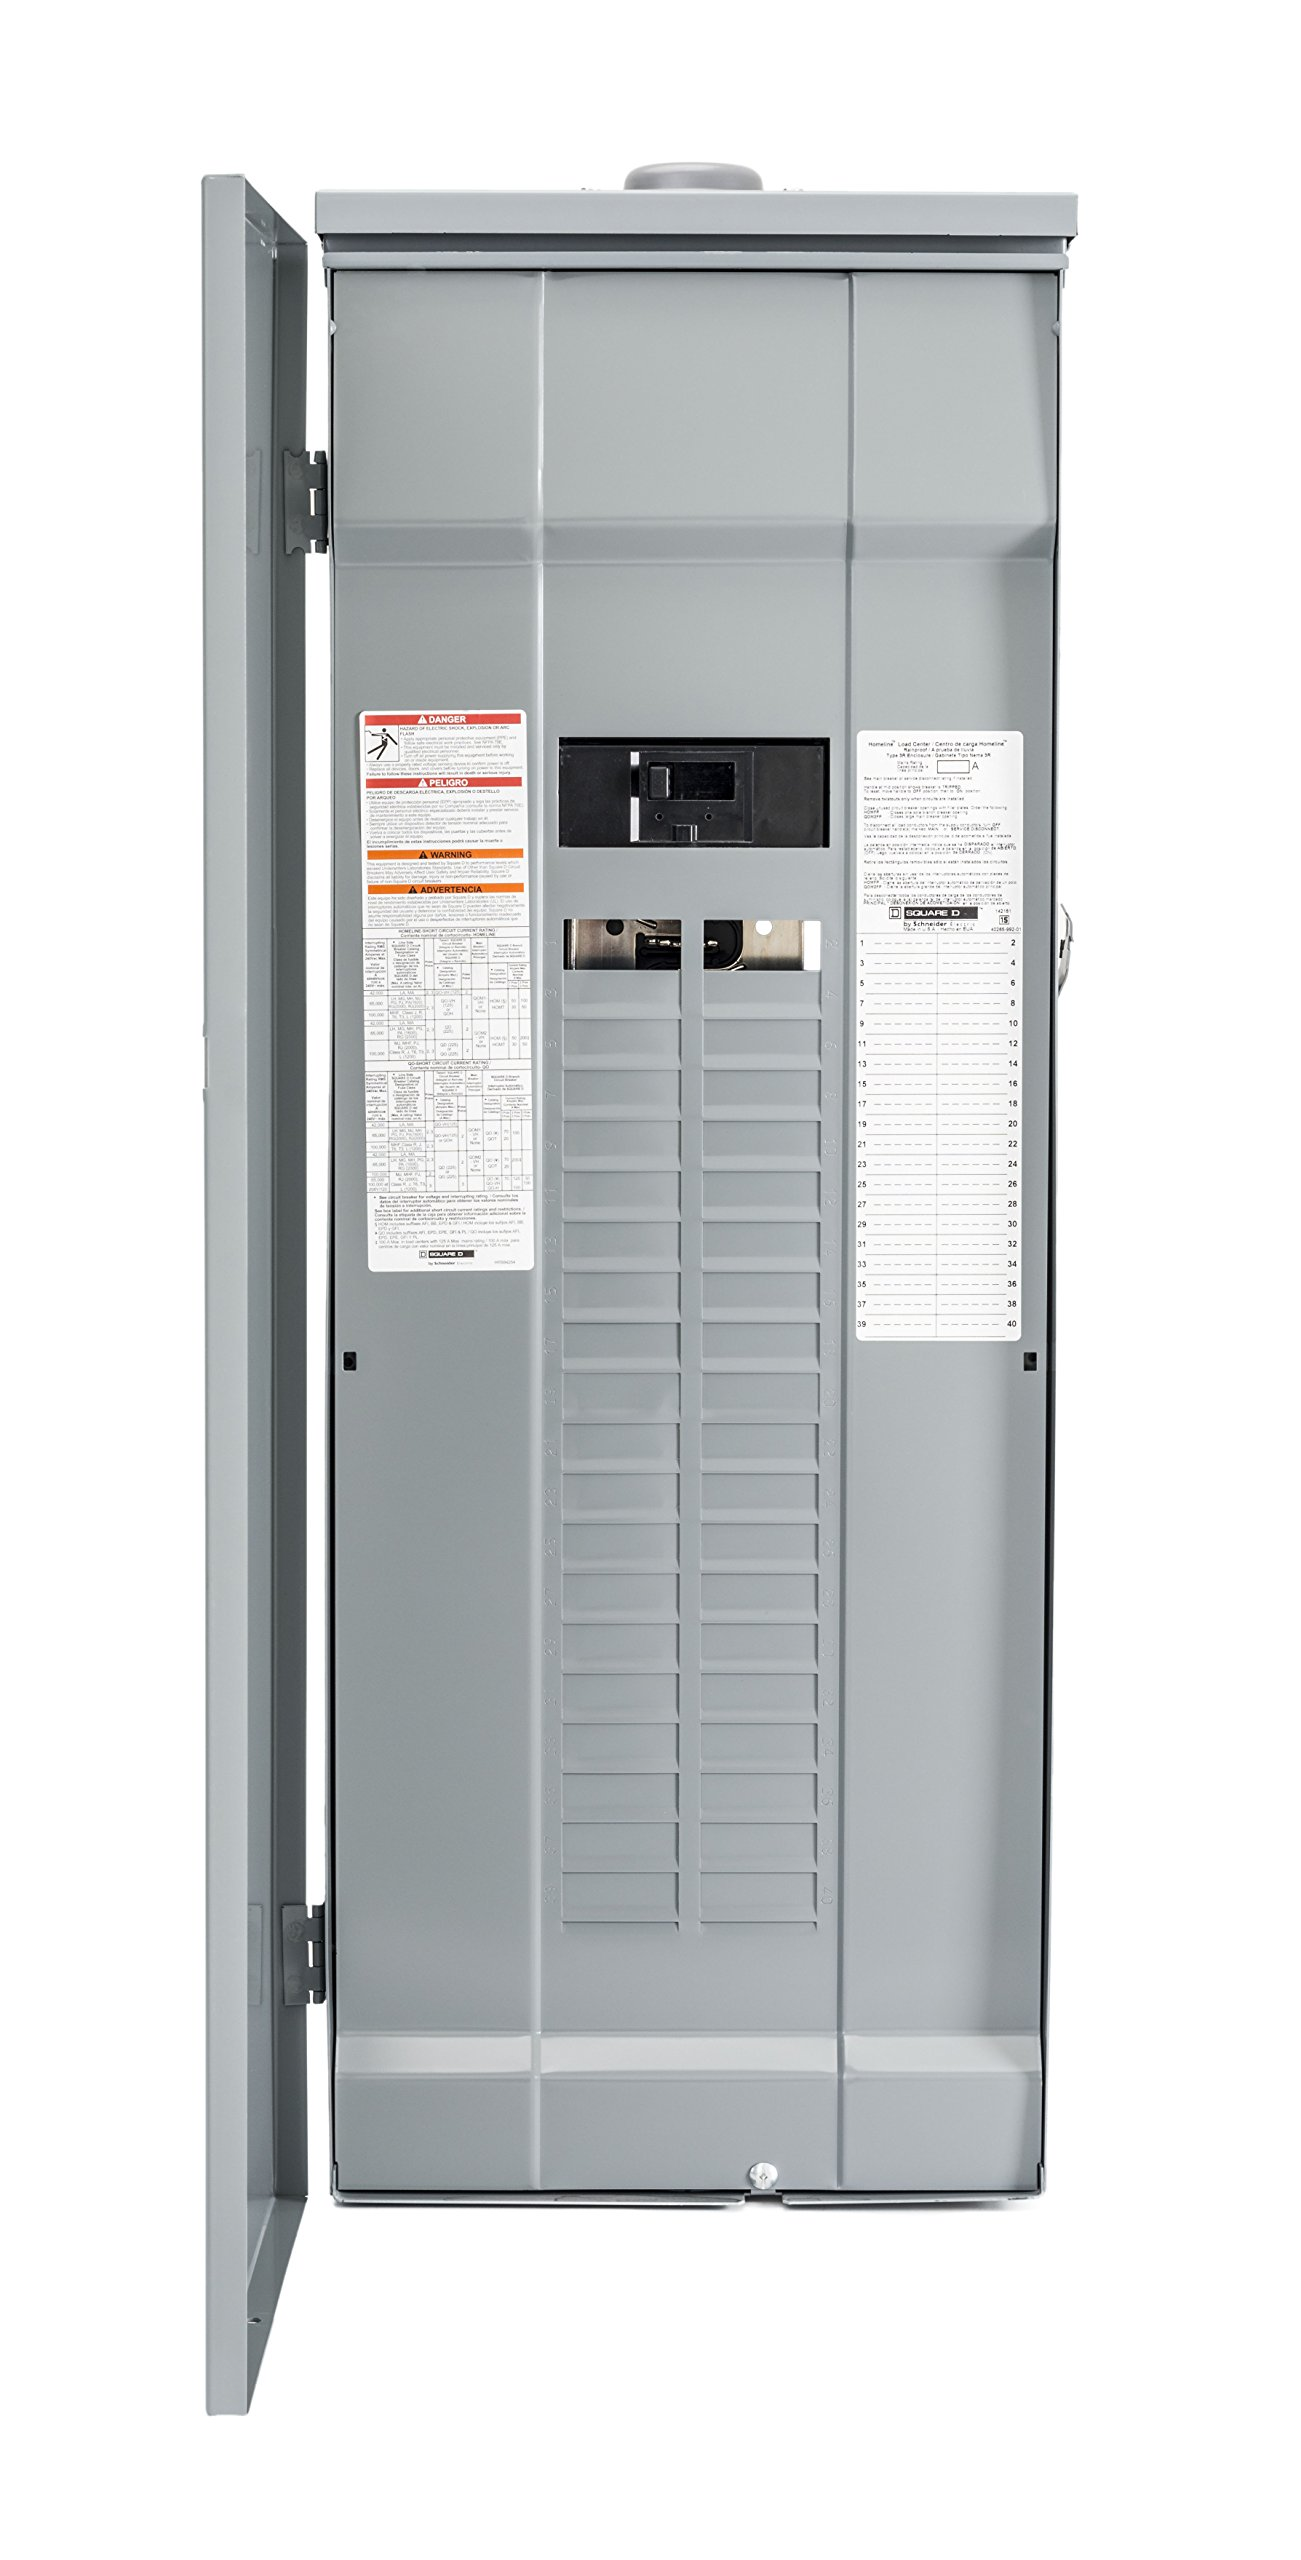 Square D by Schneider Electric HOM4080M200PRB Homeline 200 Amp 40-Space 80-Circuit Outdoor Main Breaker Load Center (Plug-on Neutral Ready),